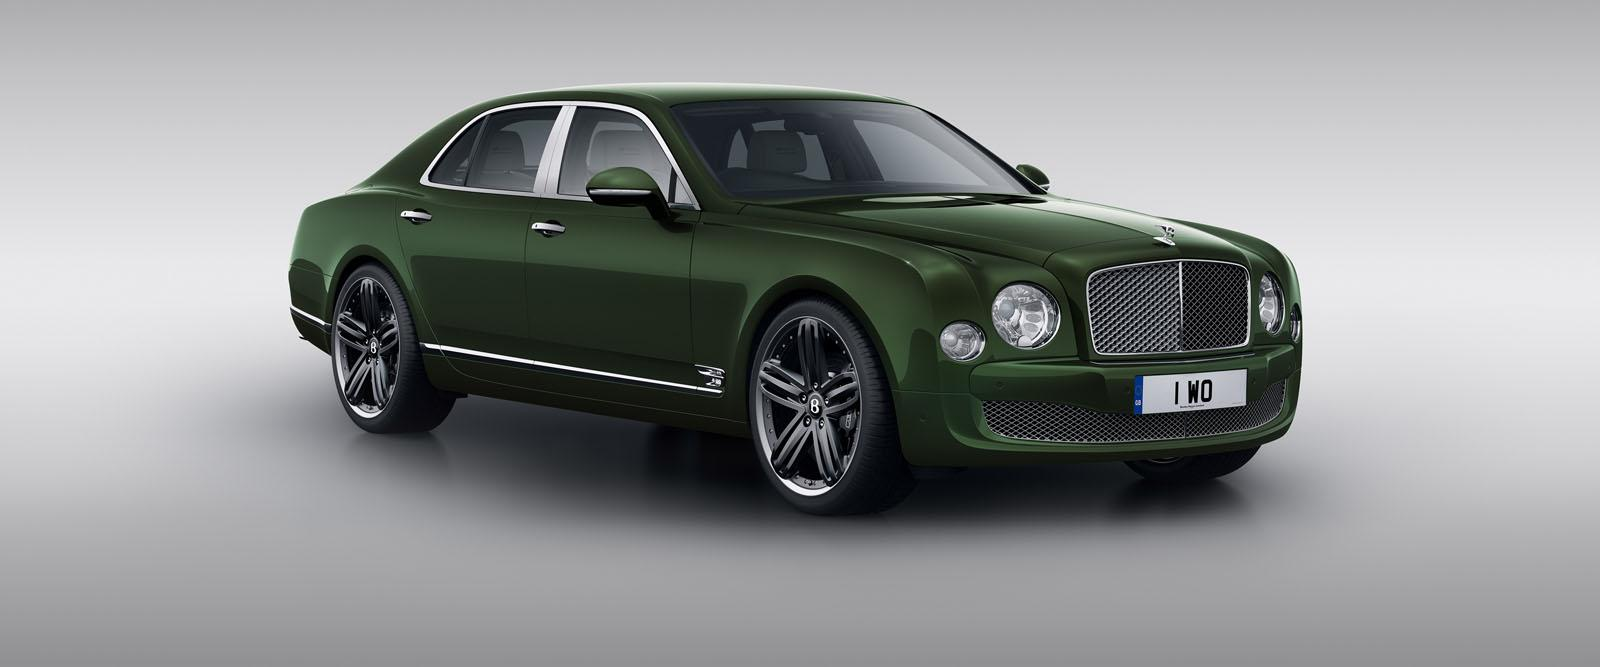 Bentley unveils the Mulsanne Le Mans Edition